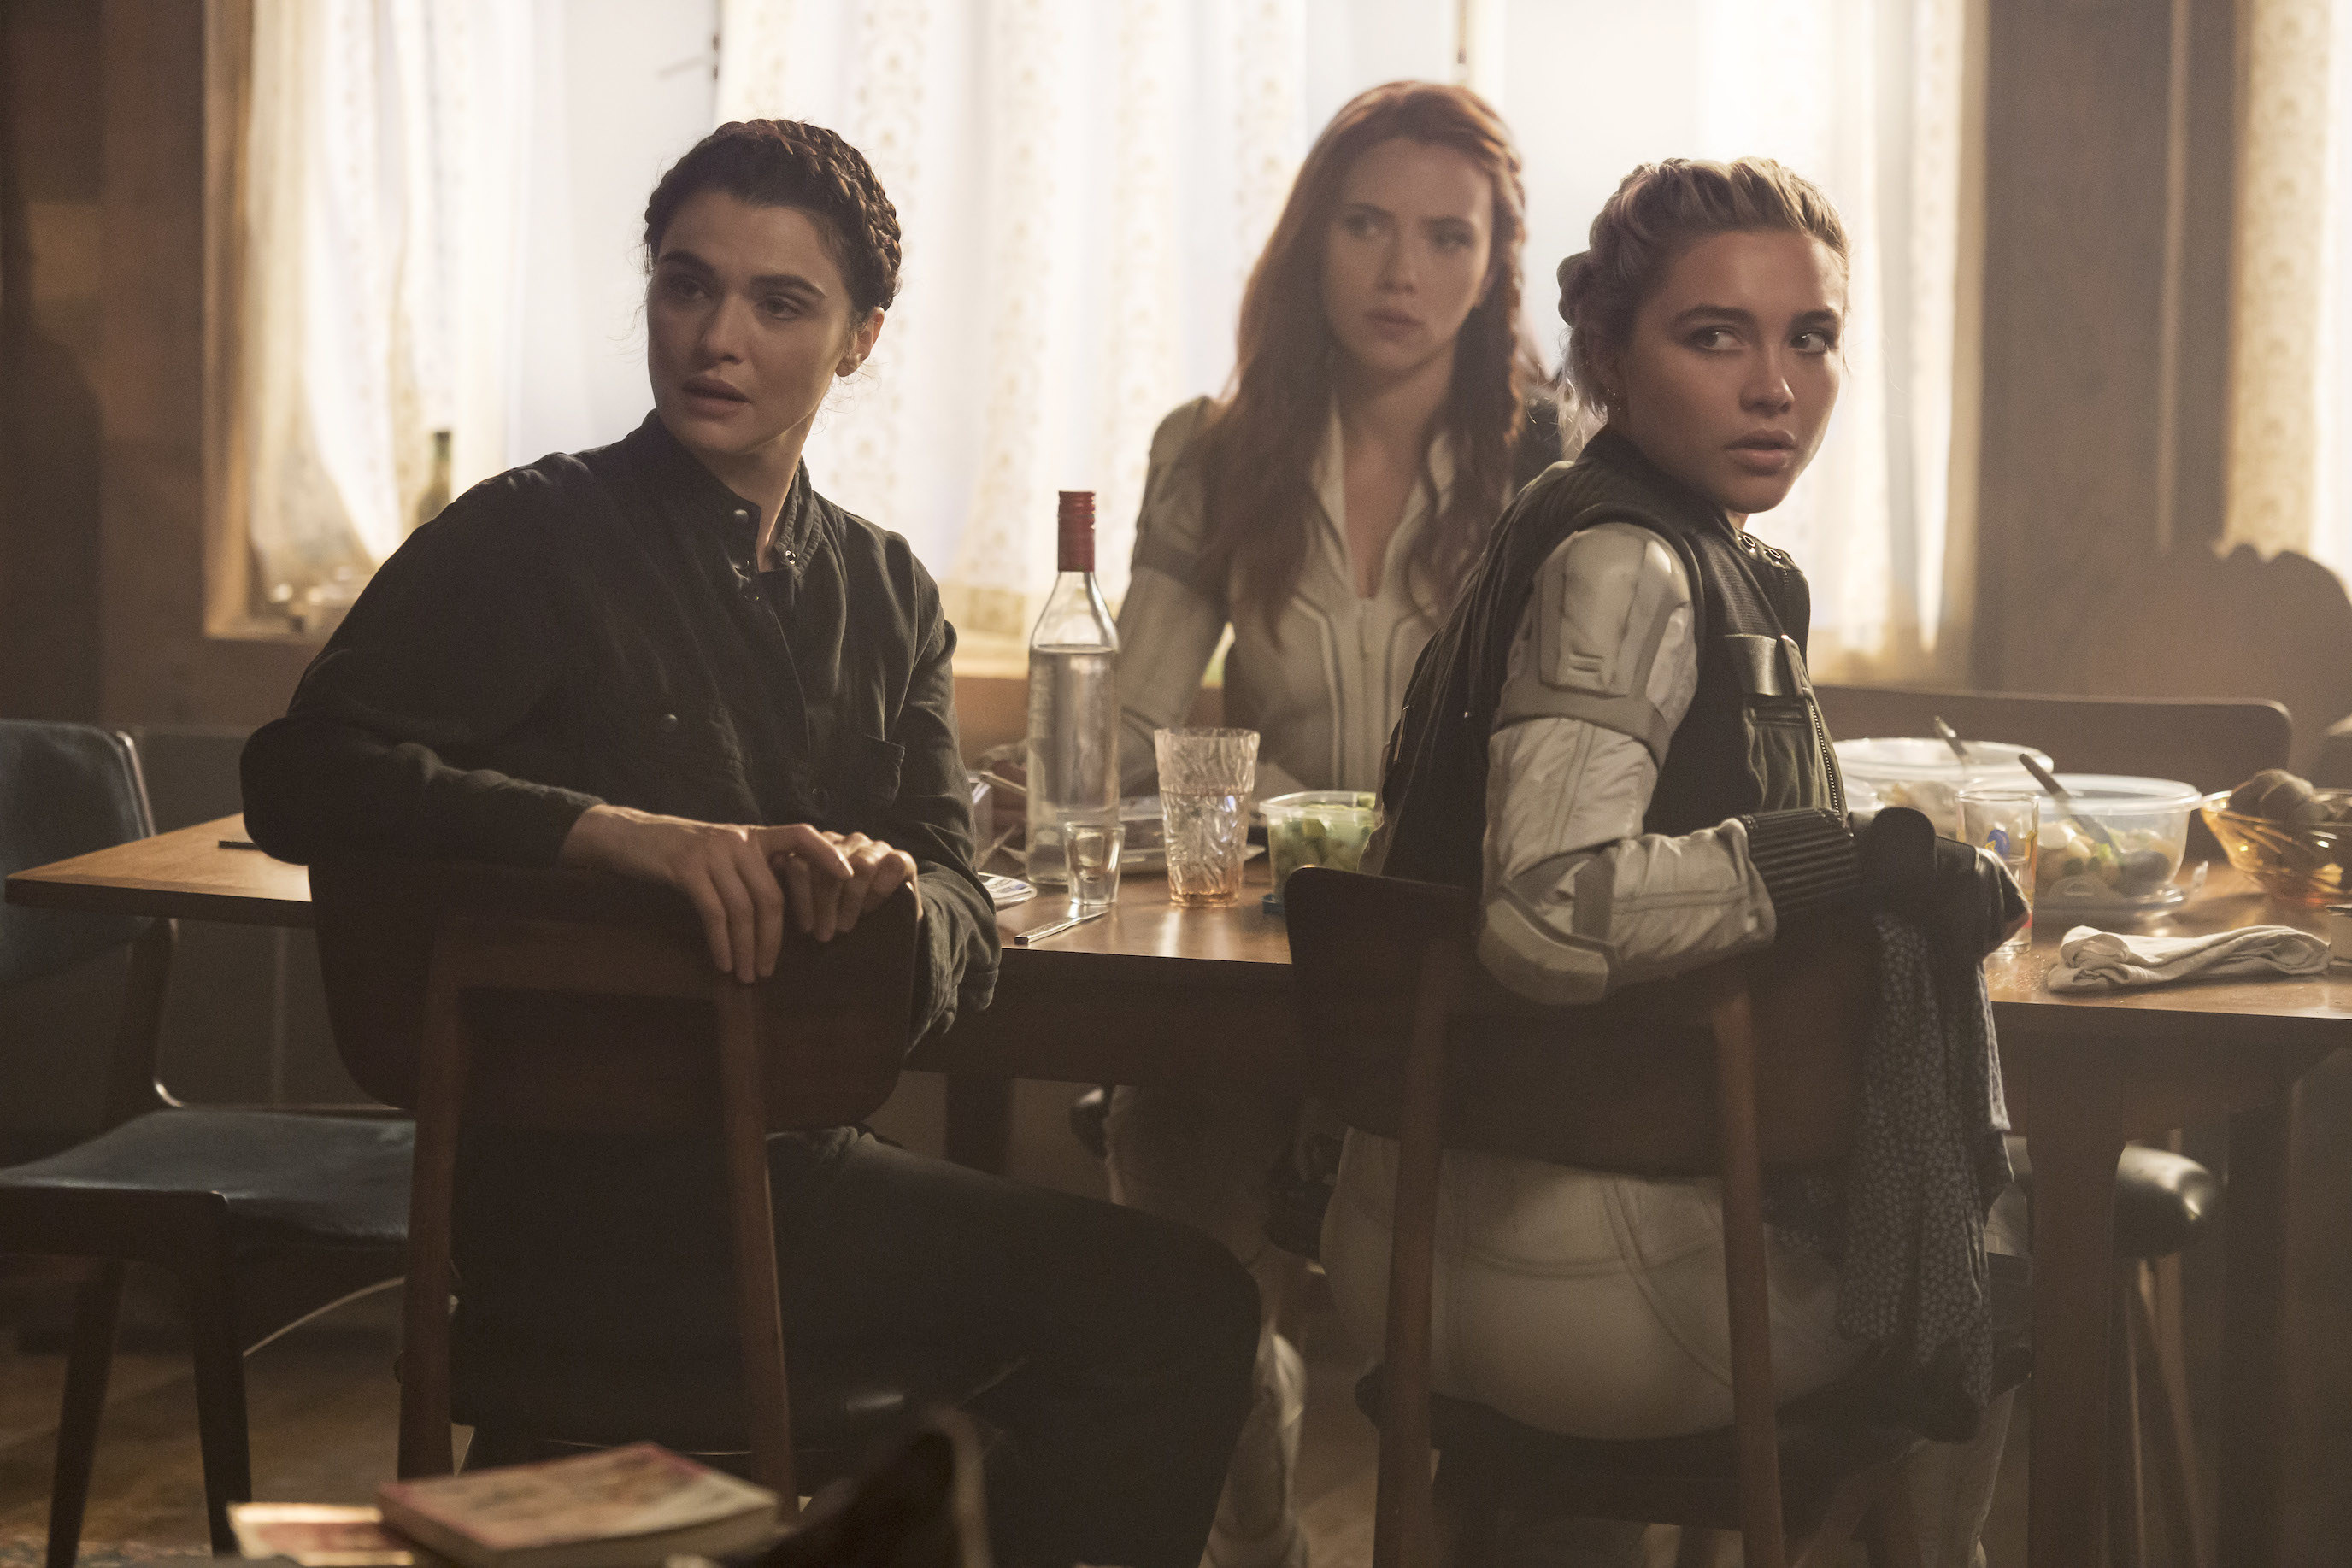 Rachel, Scarlett, and Florence sitting at a table